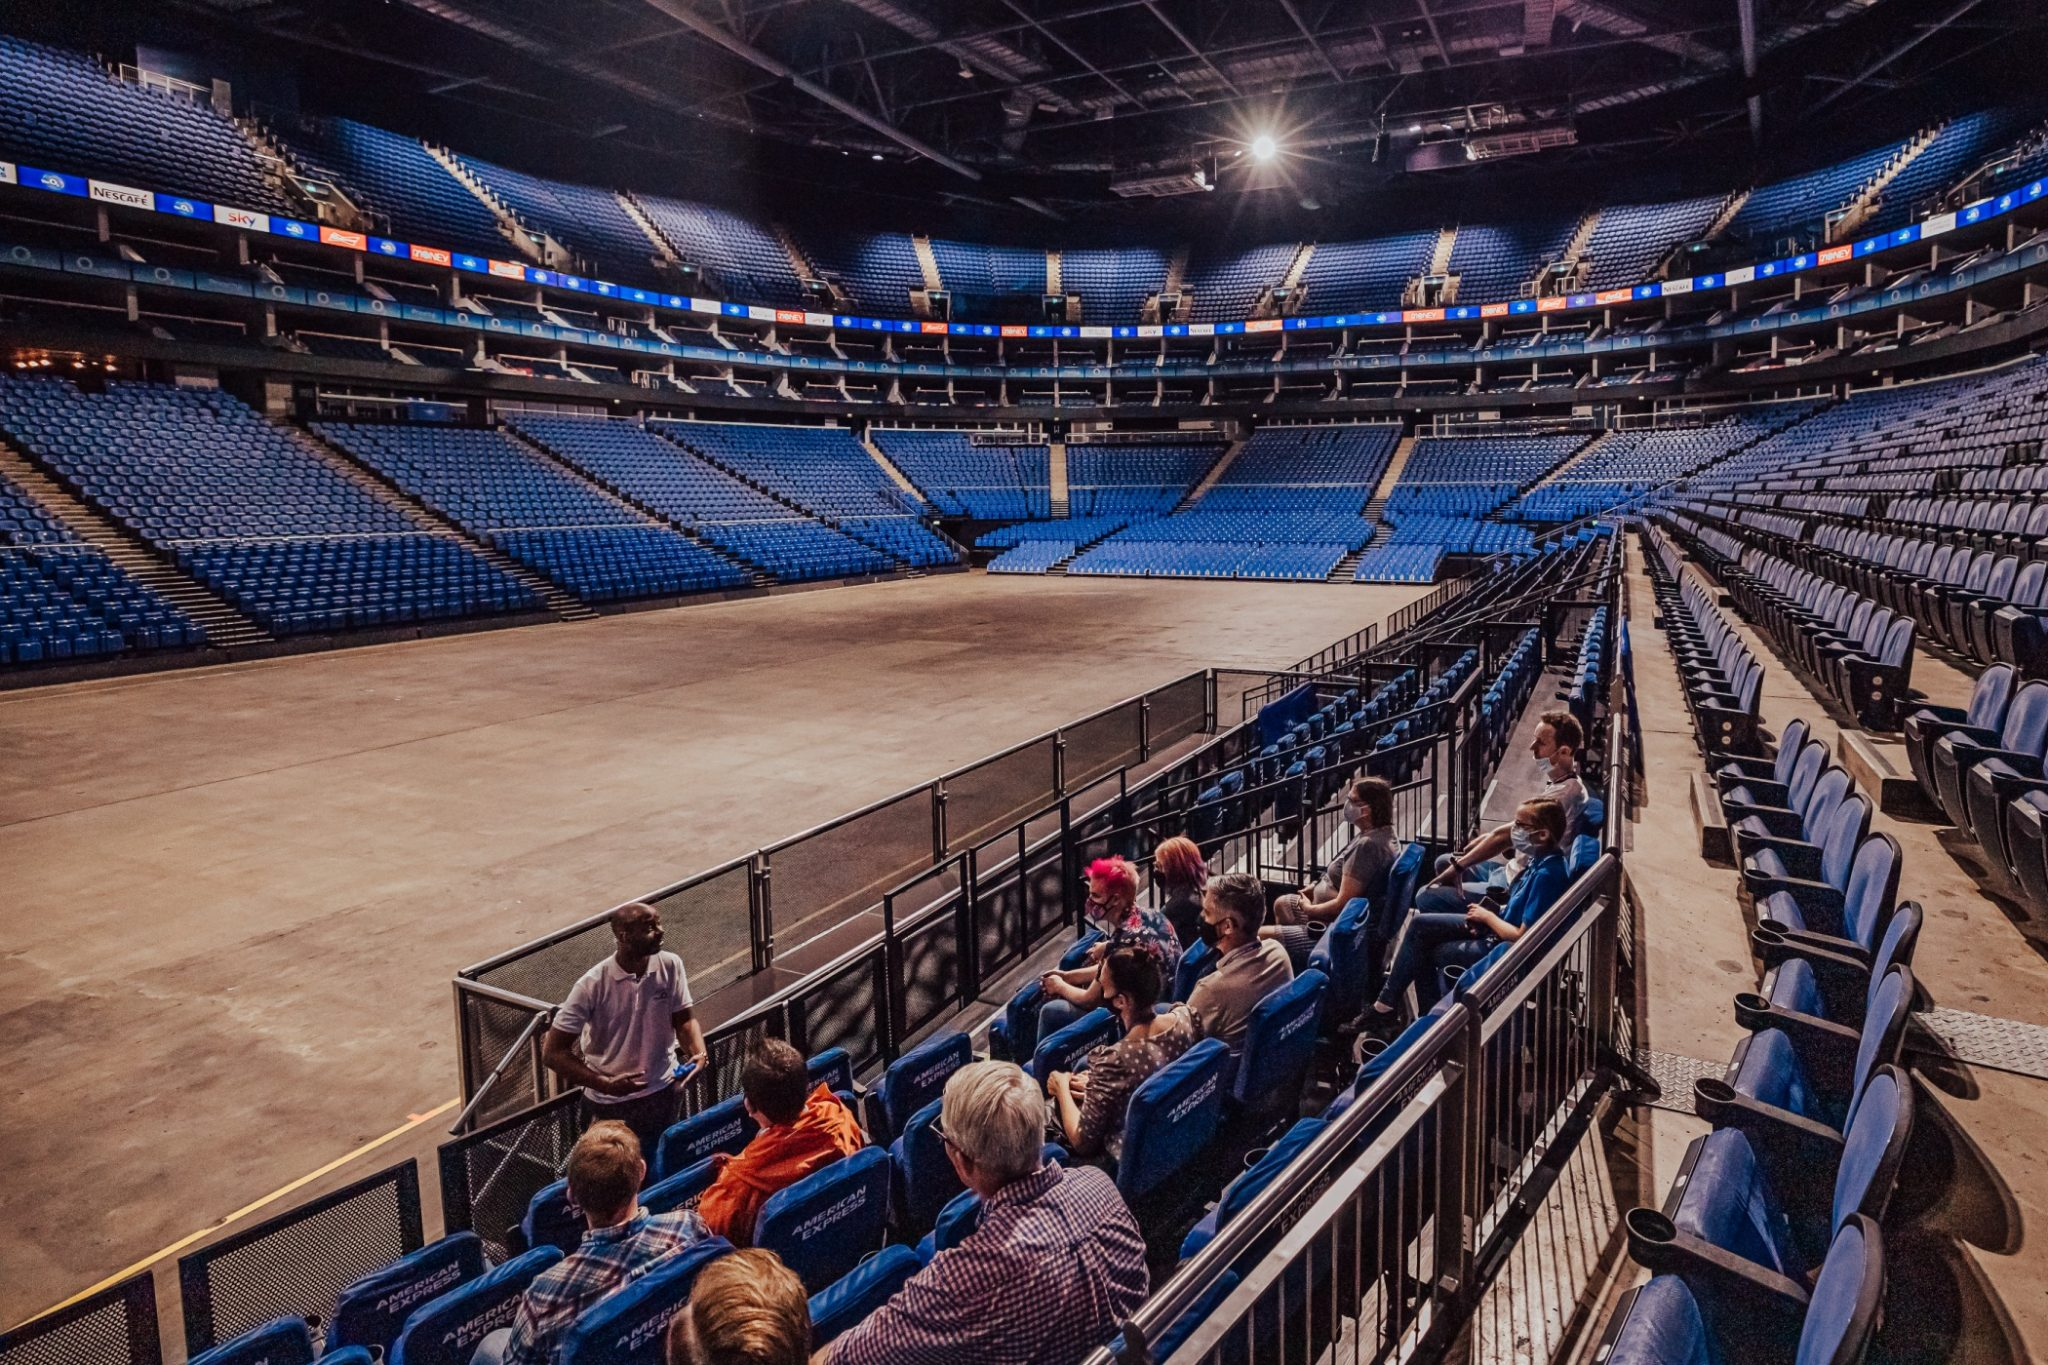 Copy of The O2 Backstage Tour - 15th August 2020 by Luke Dyson - IMG_0089